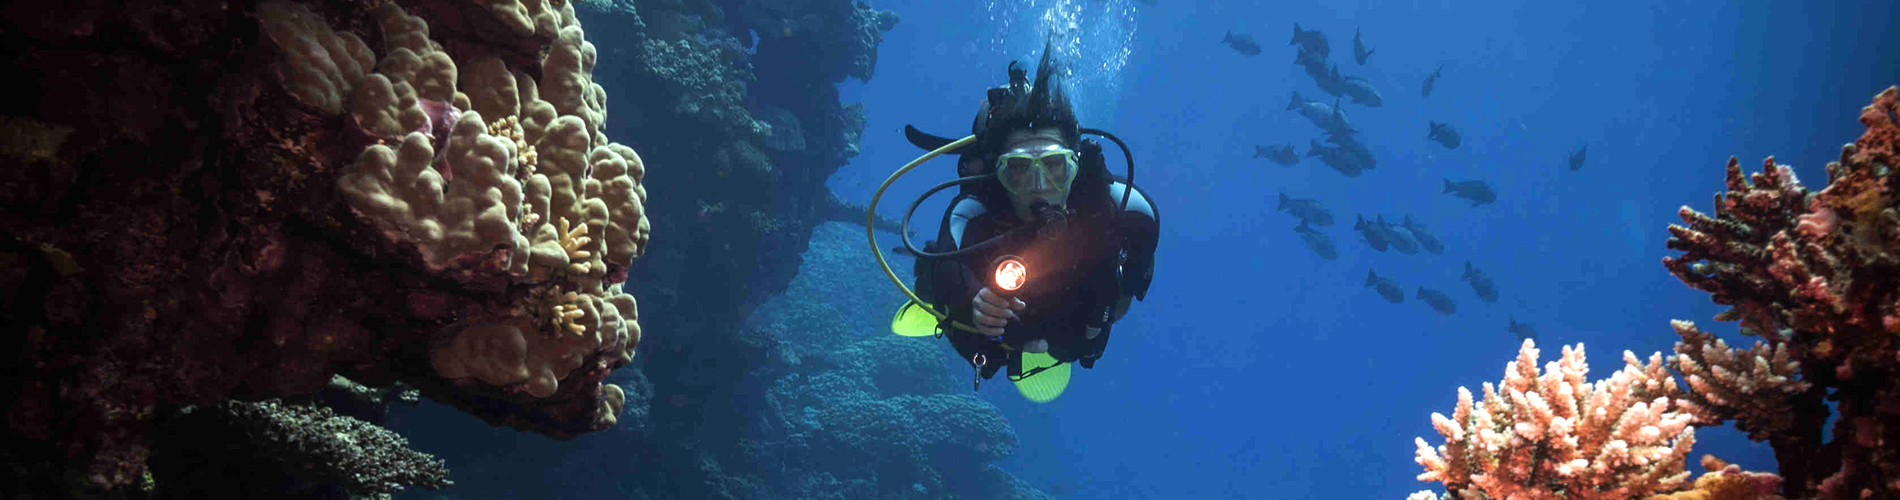 palawan divers advanced course